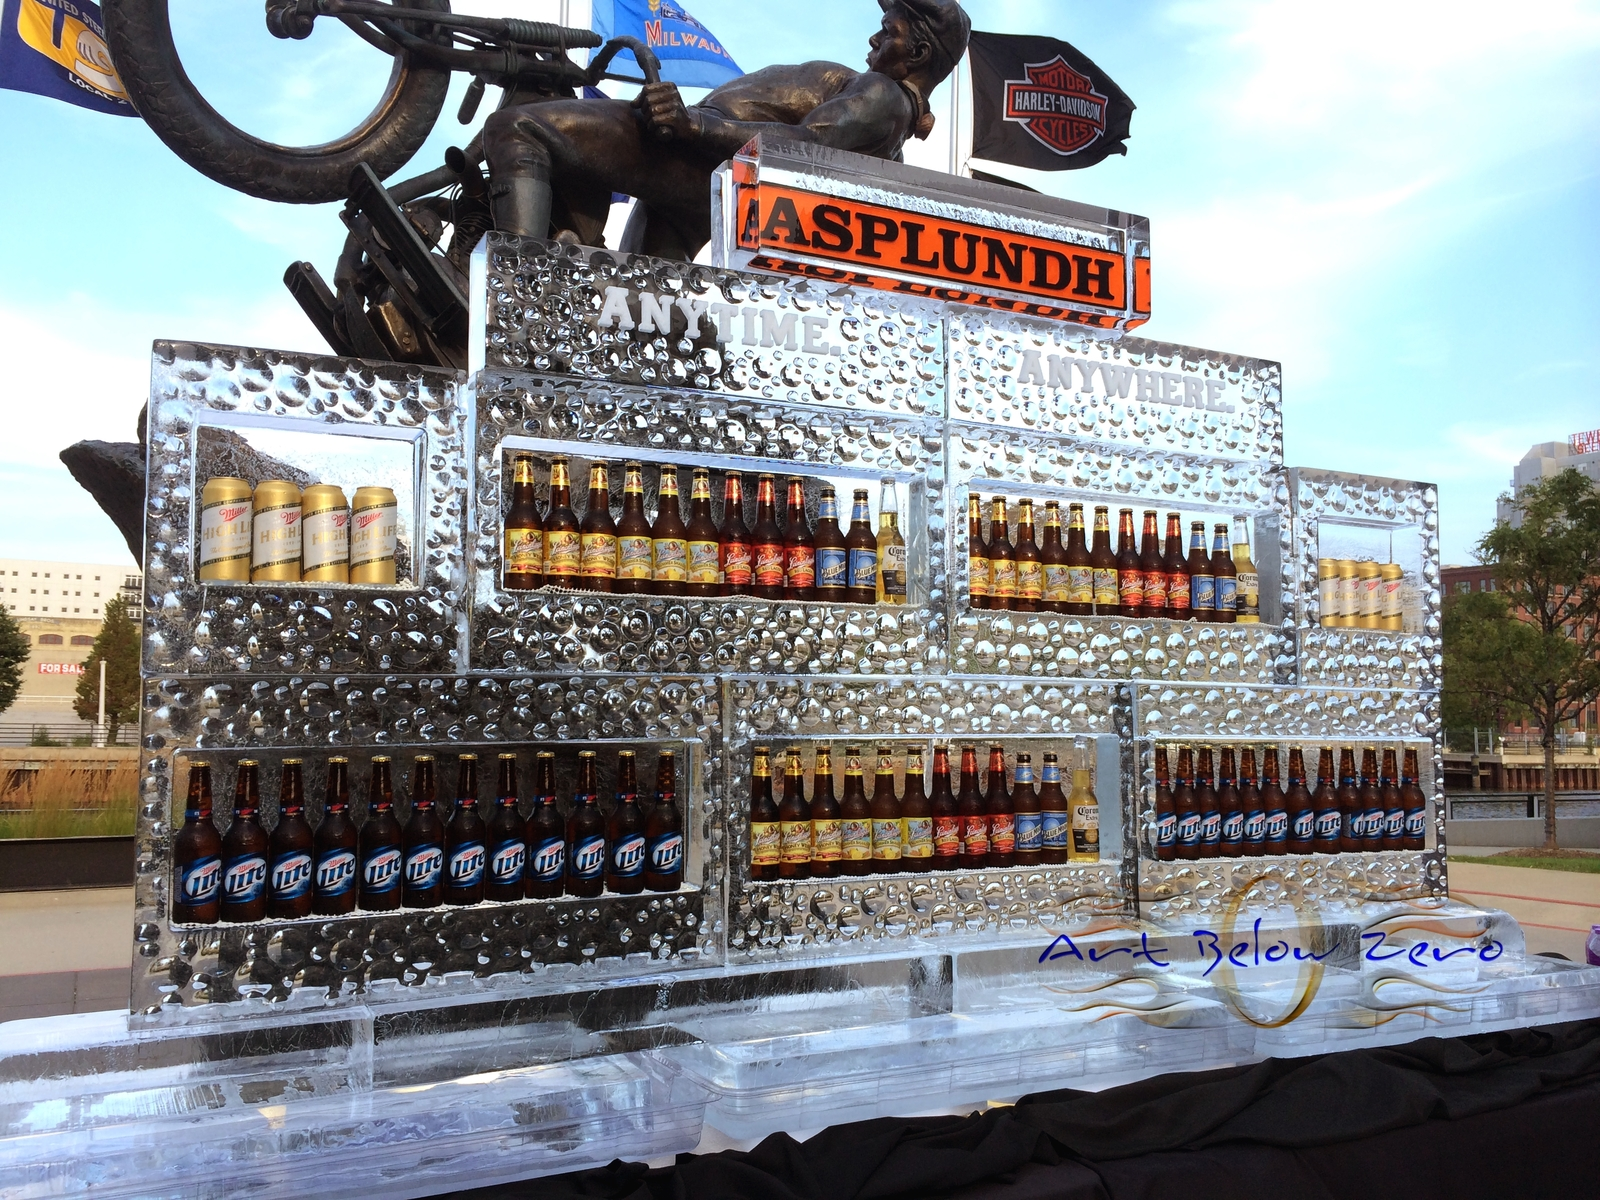 Beer_wall_ice_sculpture_for_asplandh_at_the_harley_davidson_museum_milwaukee